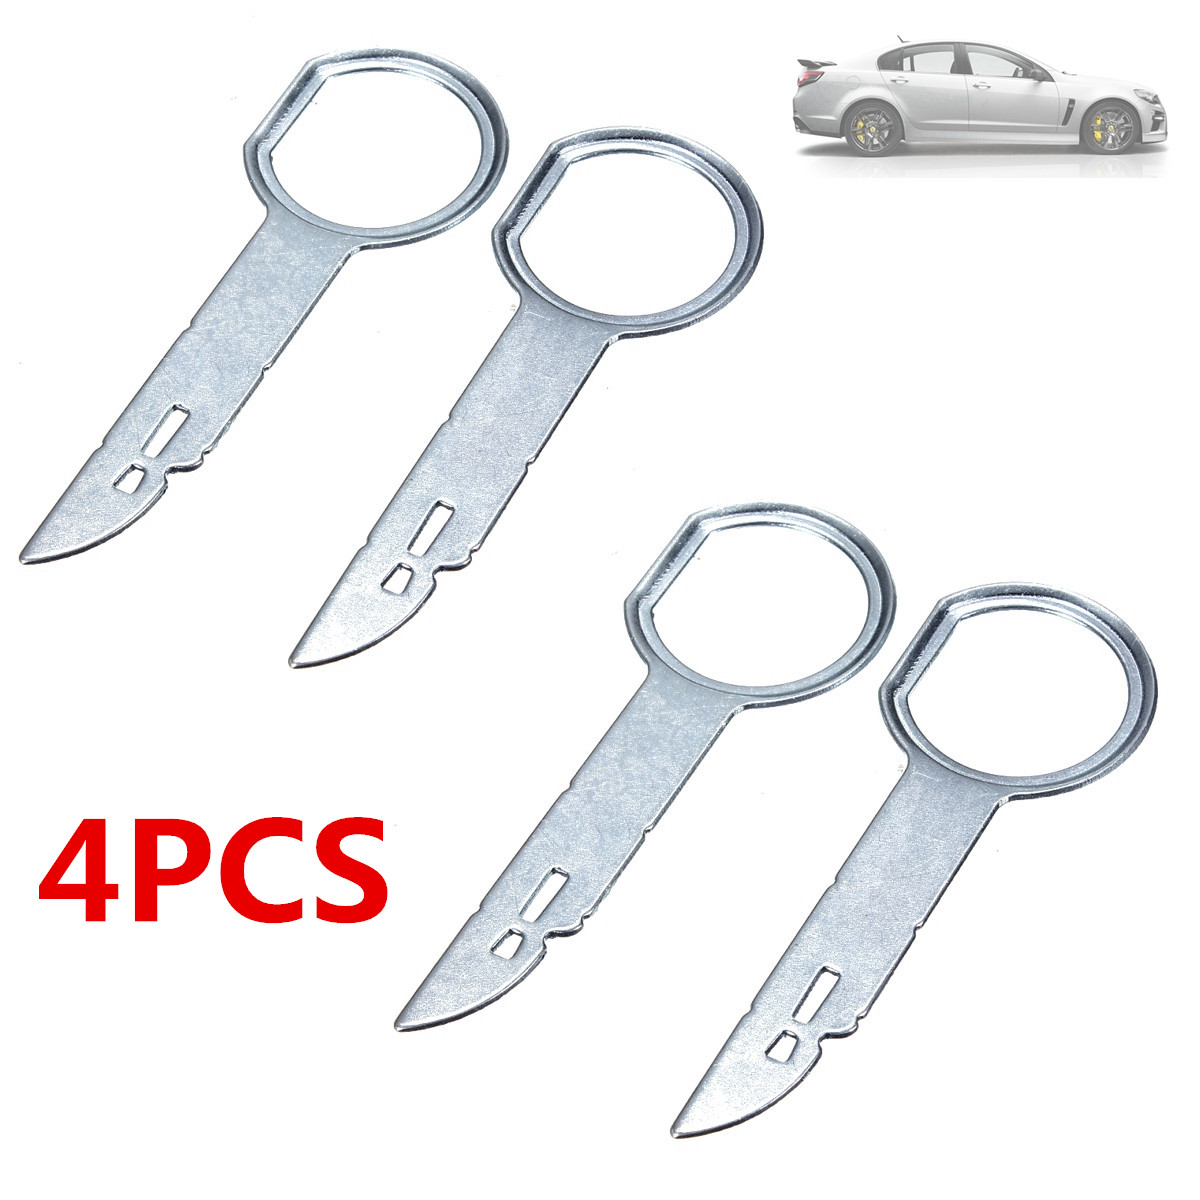 2/4pcs Keys For Car Repair Car CD Stereo Radio Removal Release Sheet Metal Tool Keys Pins Car Tool For VW For Audi For Mercedes